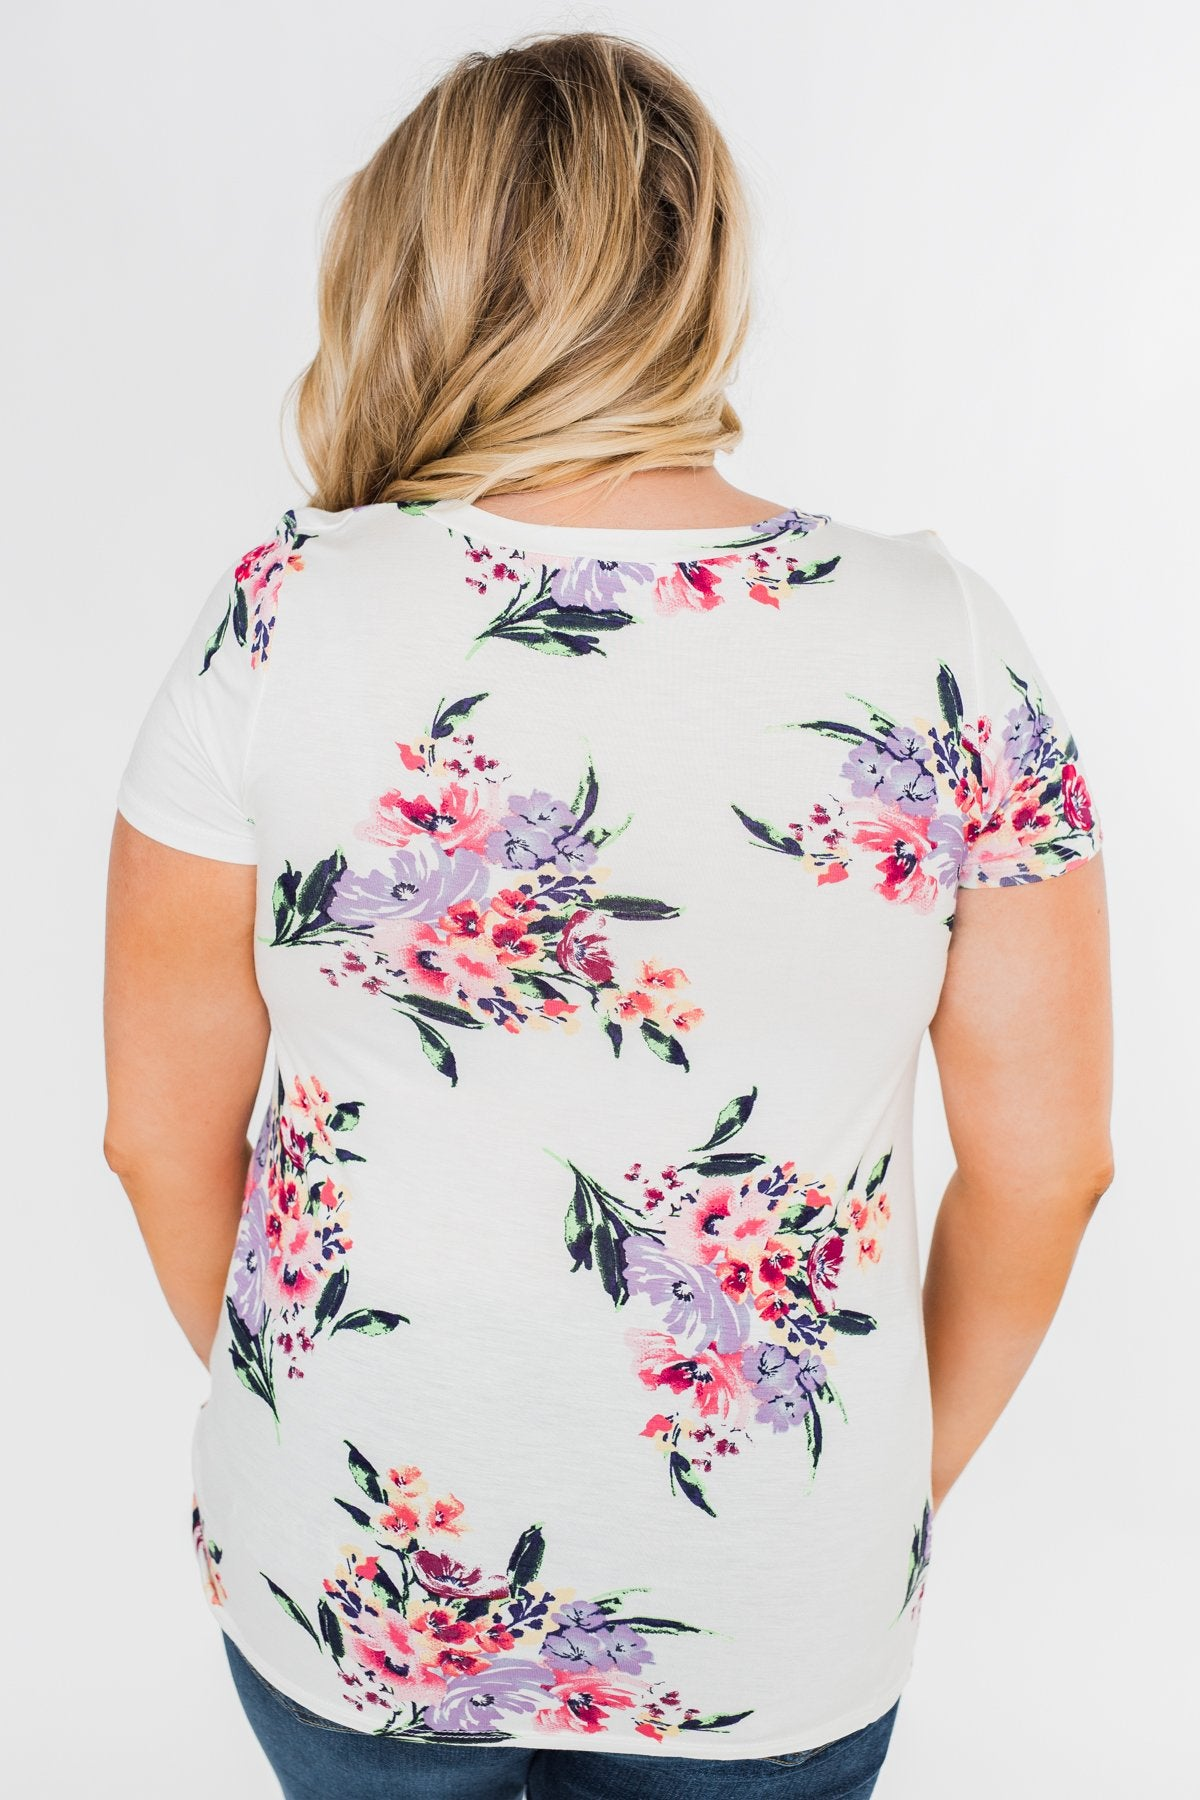 Take Your Time Floral Knot Top- White